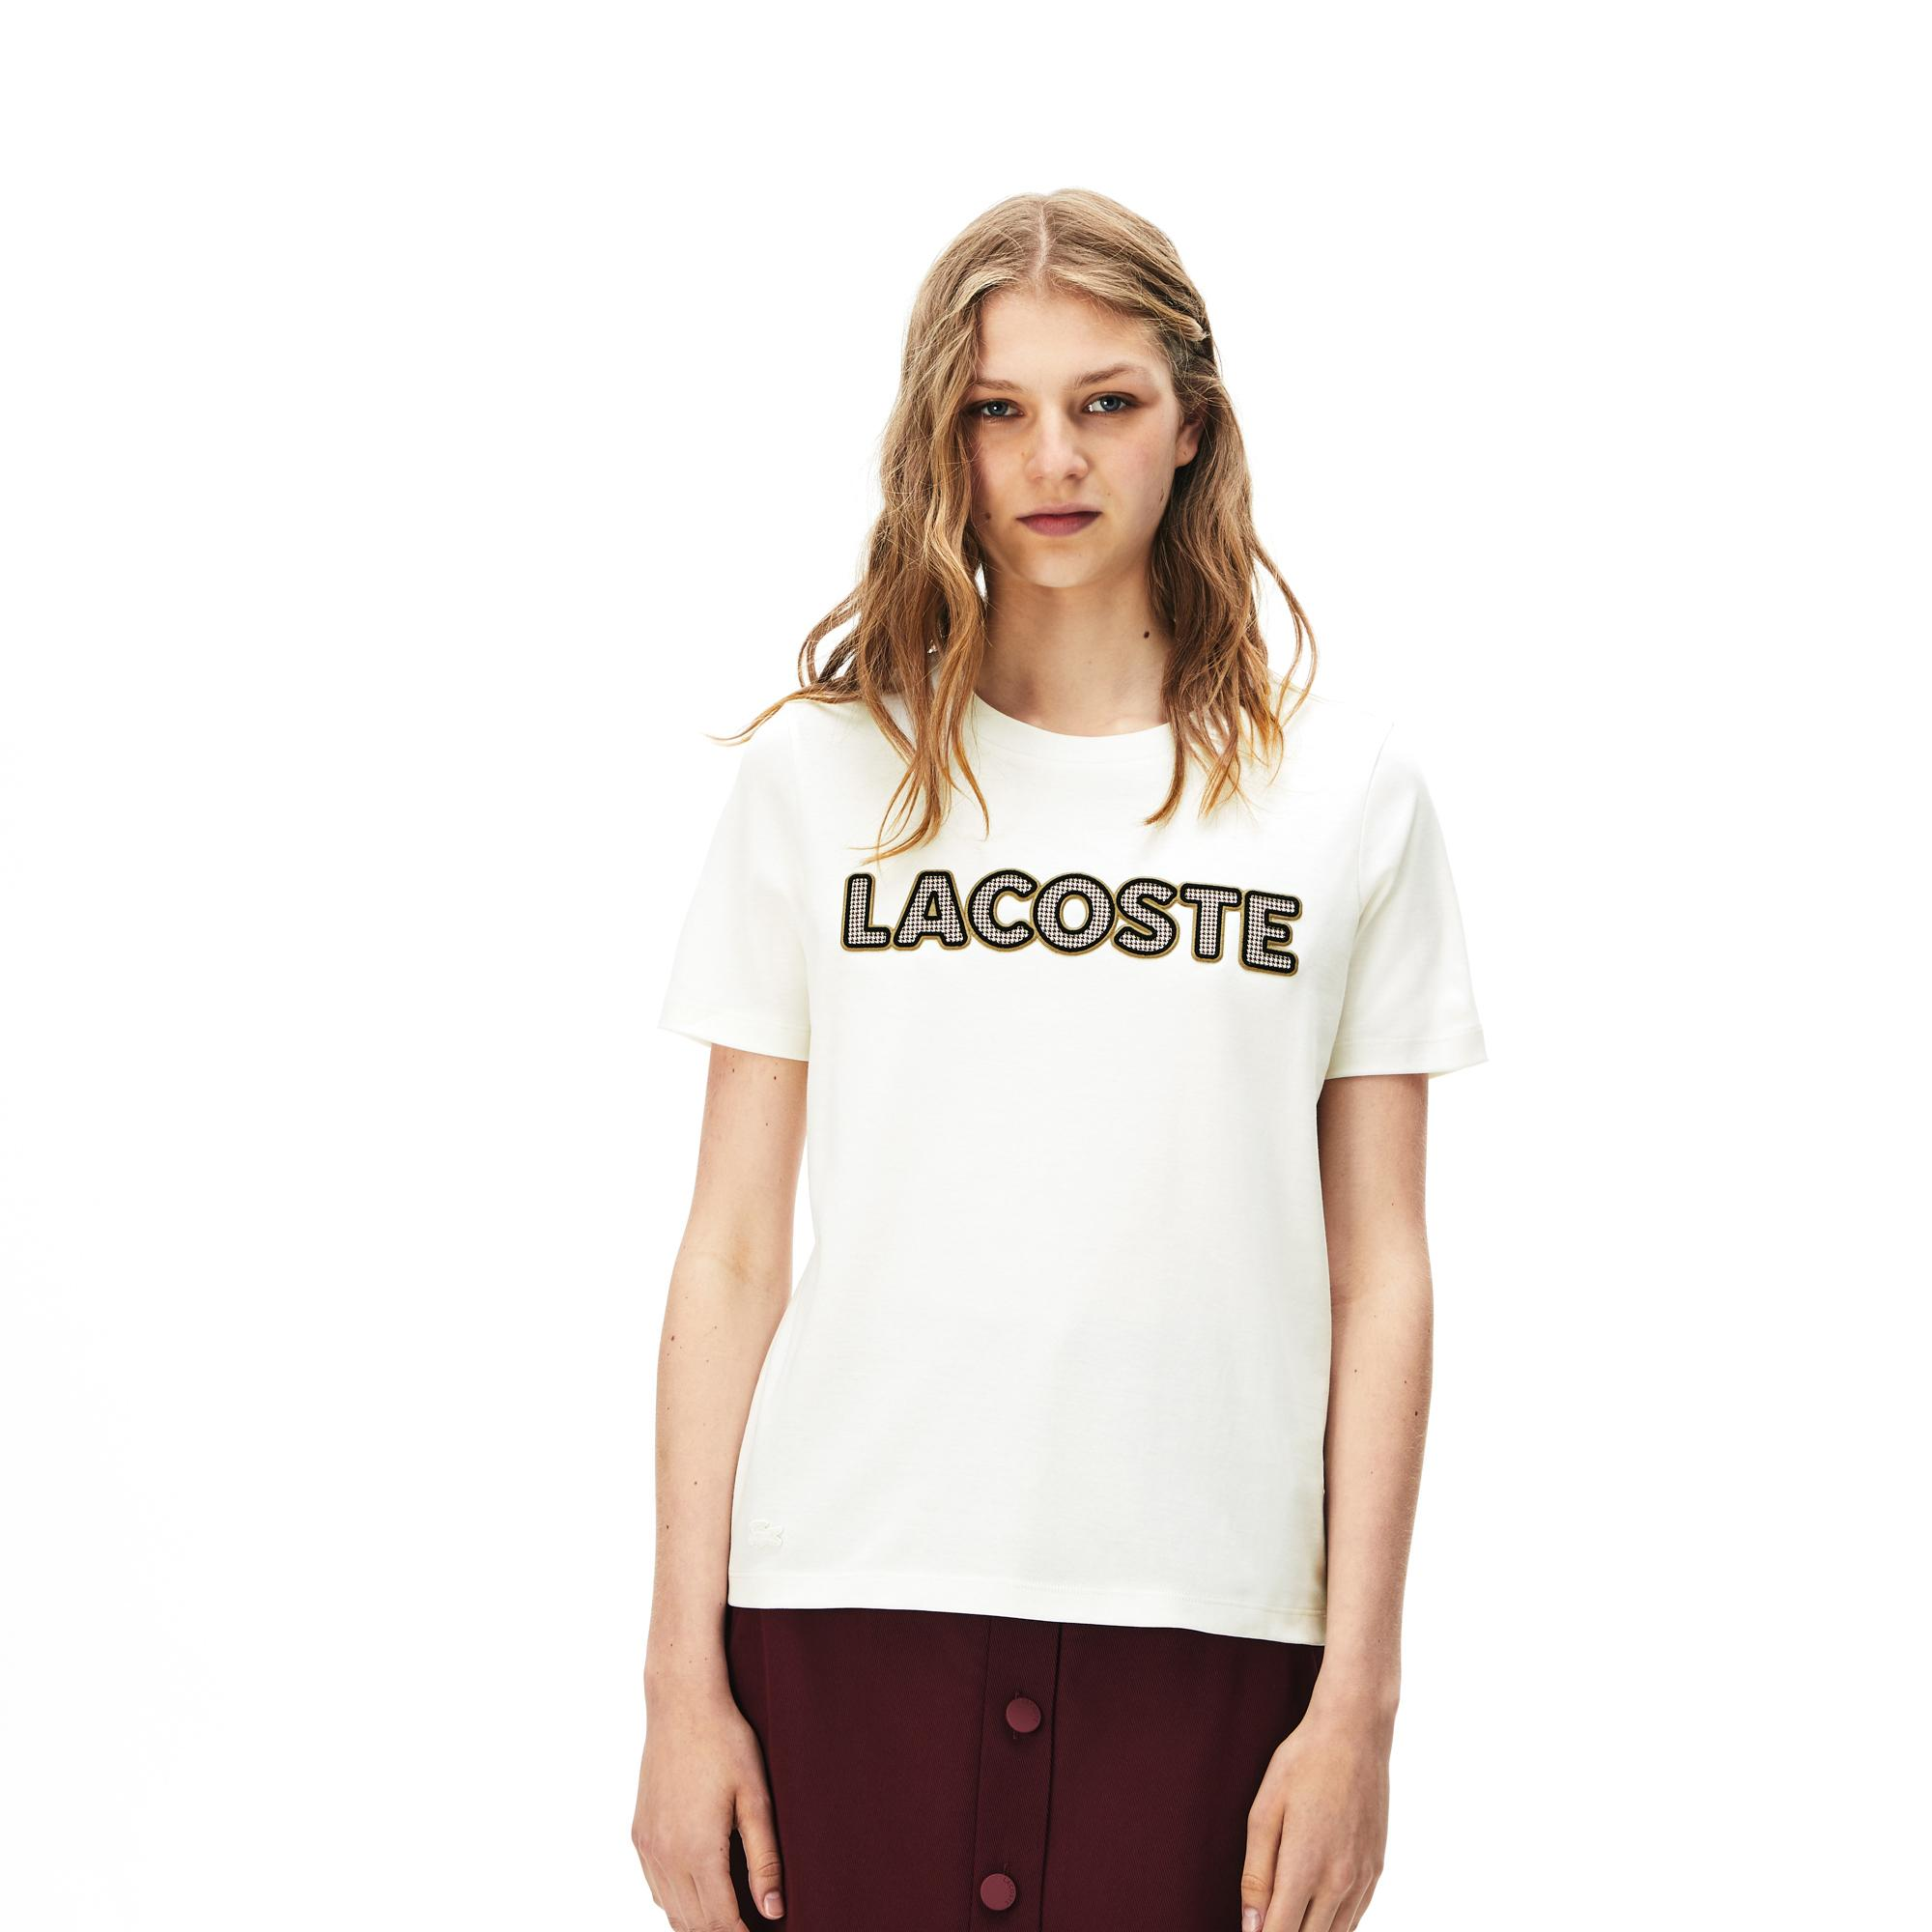 Lacoste Women's Crew Neck Check Lacoste Badge Lightweight Cotton T-Shirt